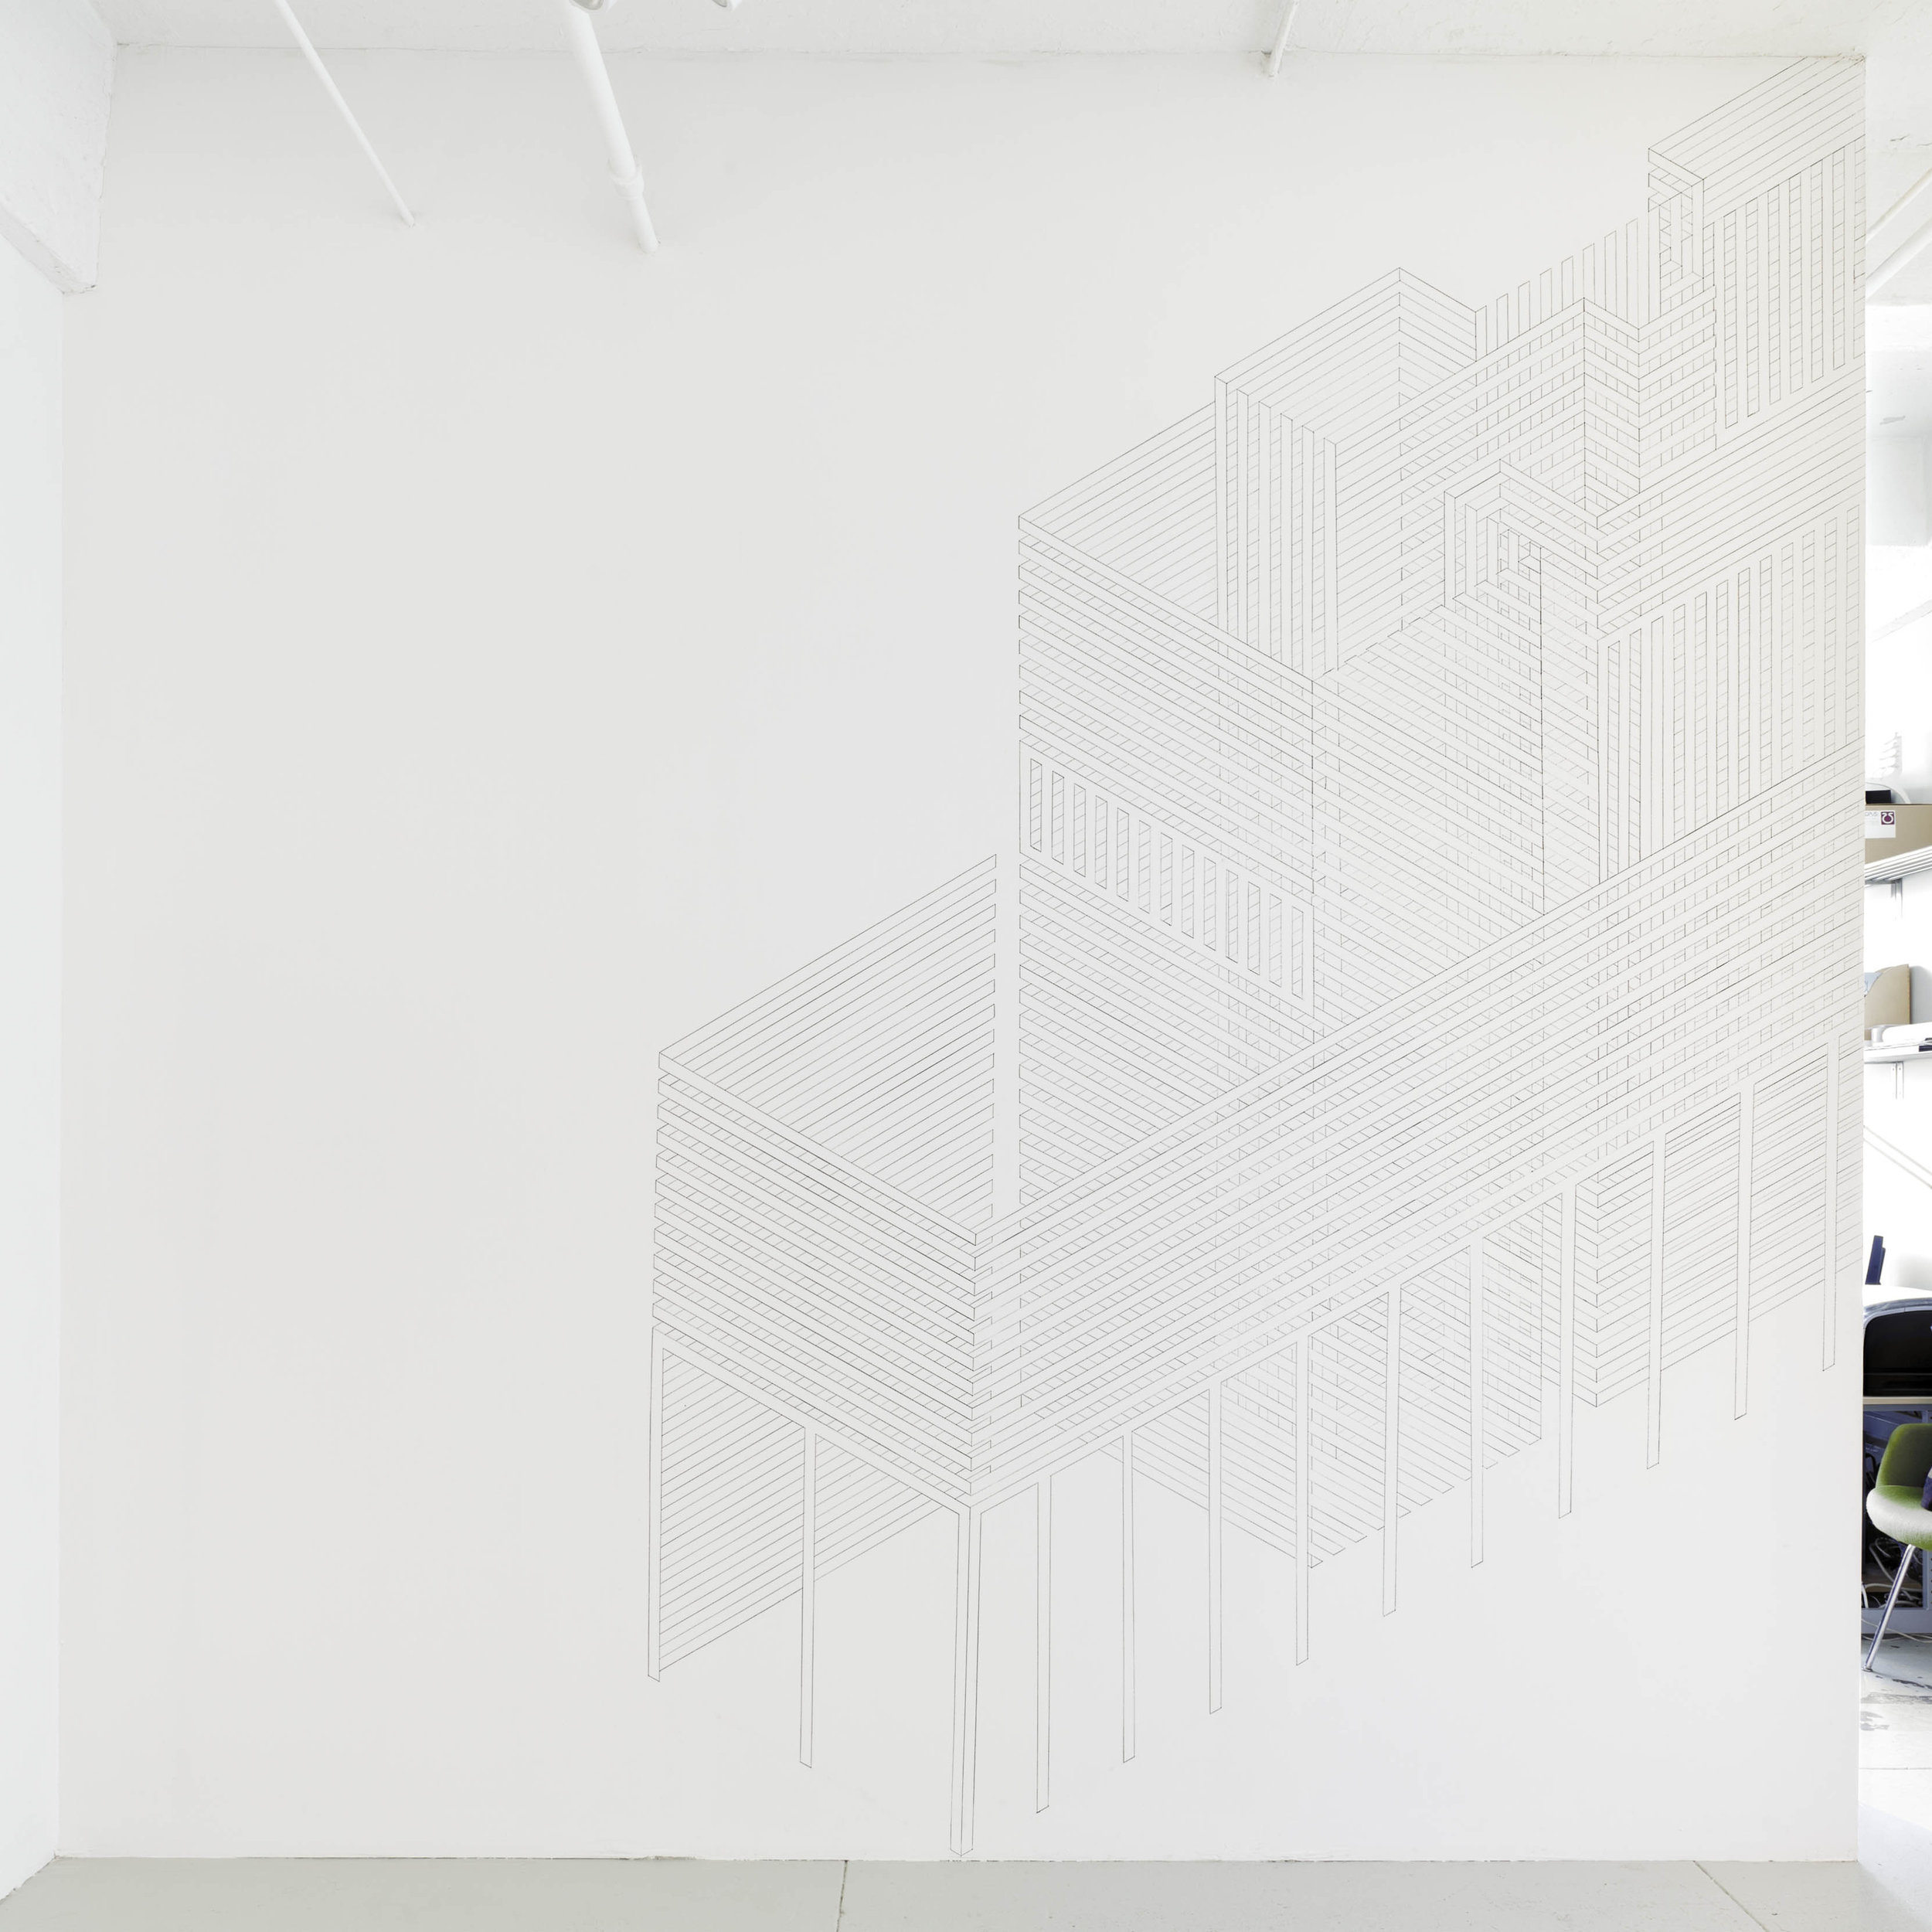 Construction Wall Drawing 3, 2012  graphite on wall  12 x 12 feet